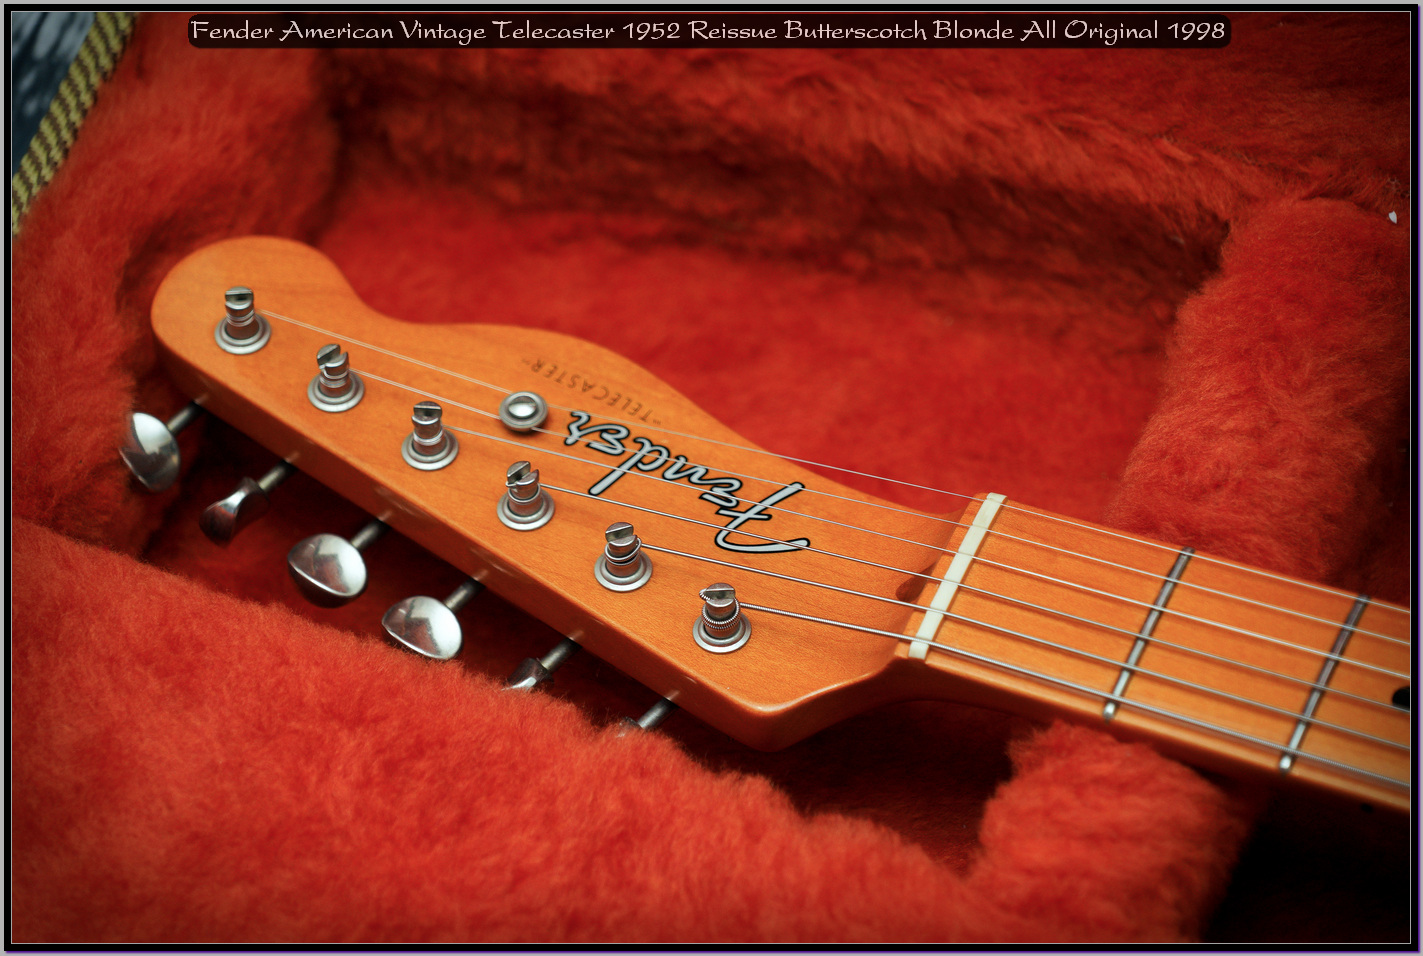 Fender American Vintage Telecaster 1952 Reissue Butterscotch Blonde All Original 1998 11_x1440.jpg